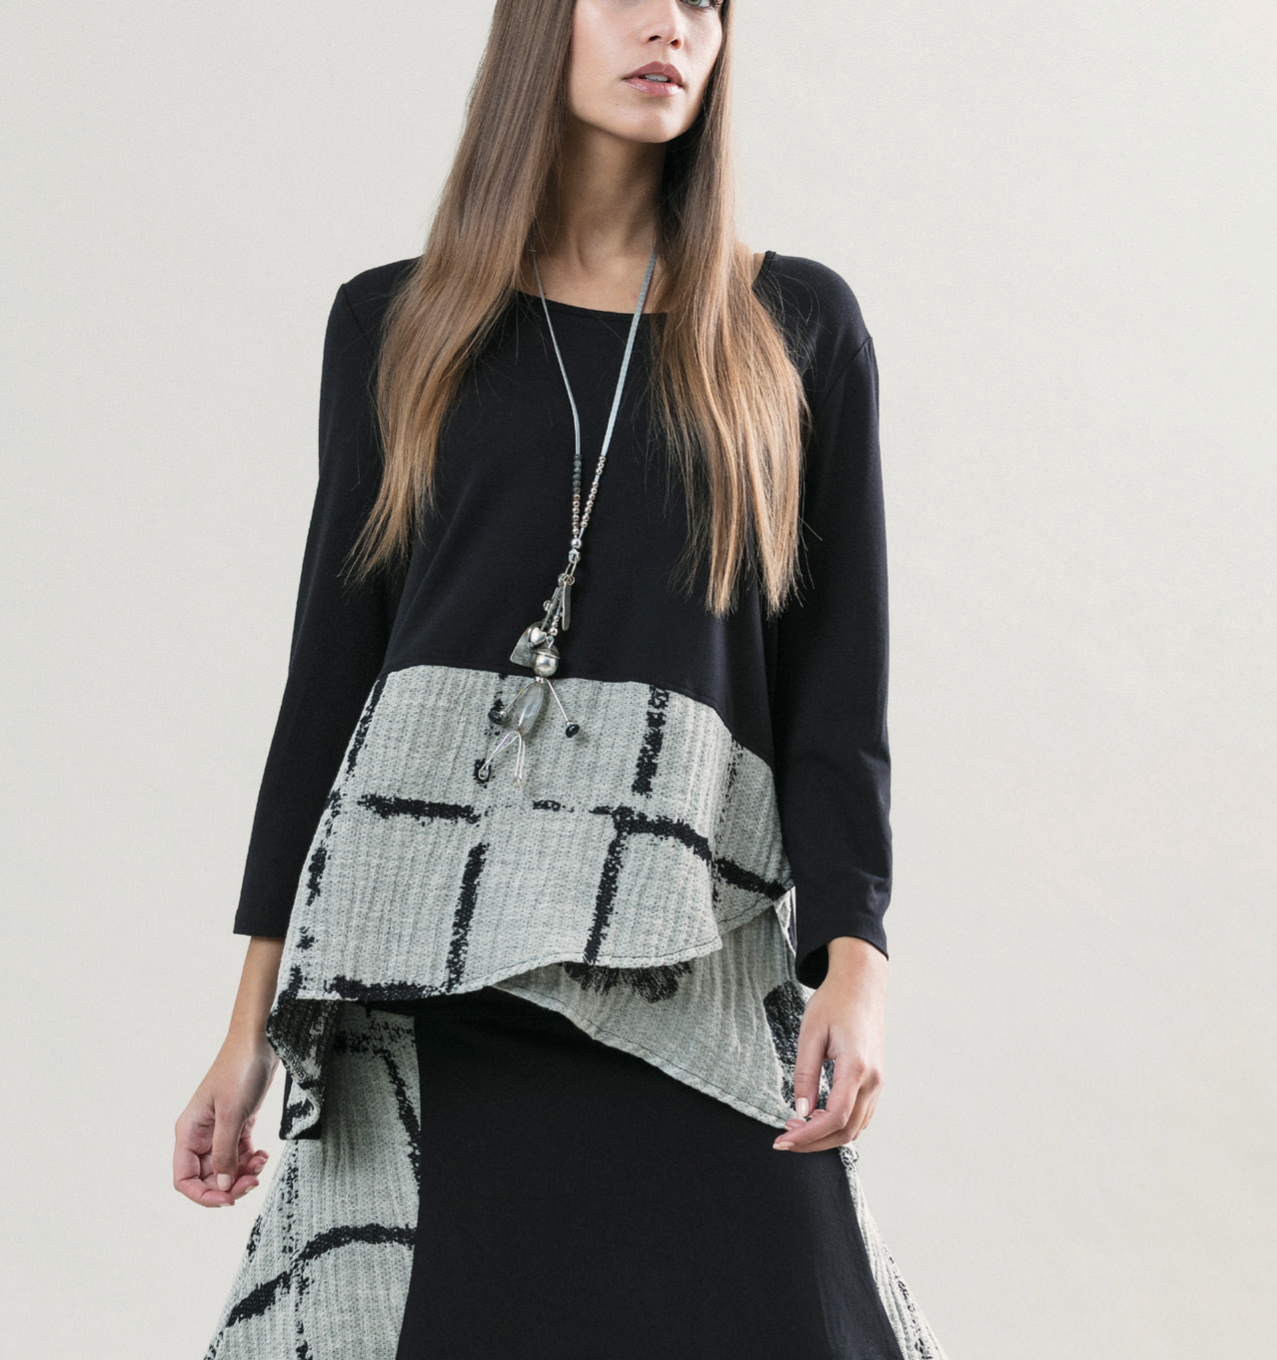 G!oze France: Bubble Rhapsody Asymmetrical Tunic (3 Left!) G_CESAR